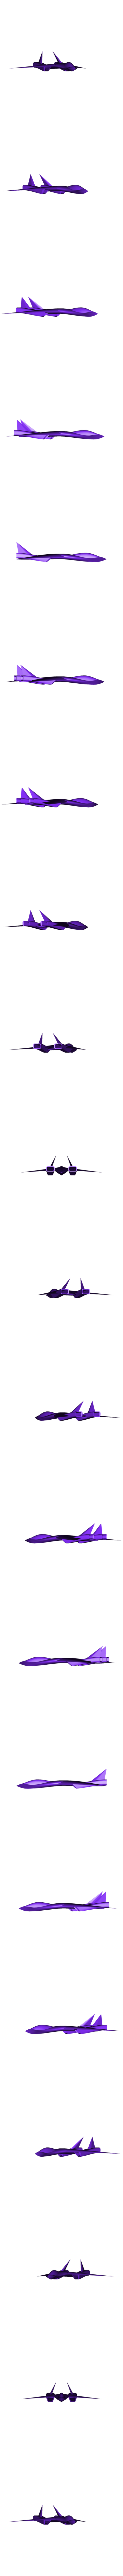 starfighter2.1.2.stl Download free STL file Starfighters with a display stand • 3D print object, morrisblue